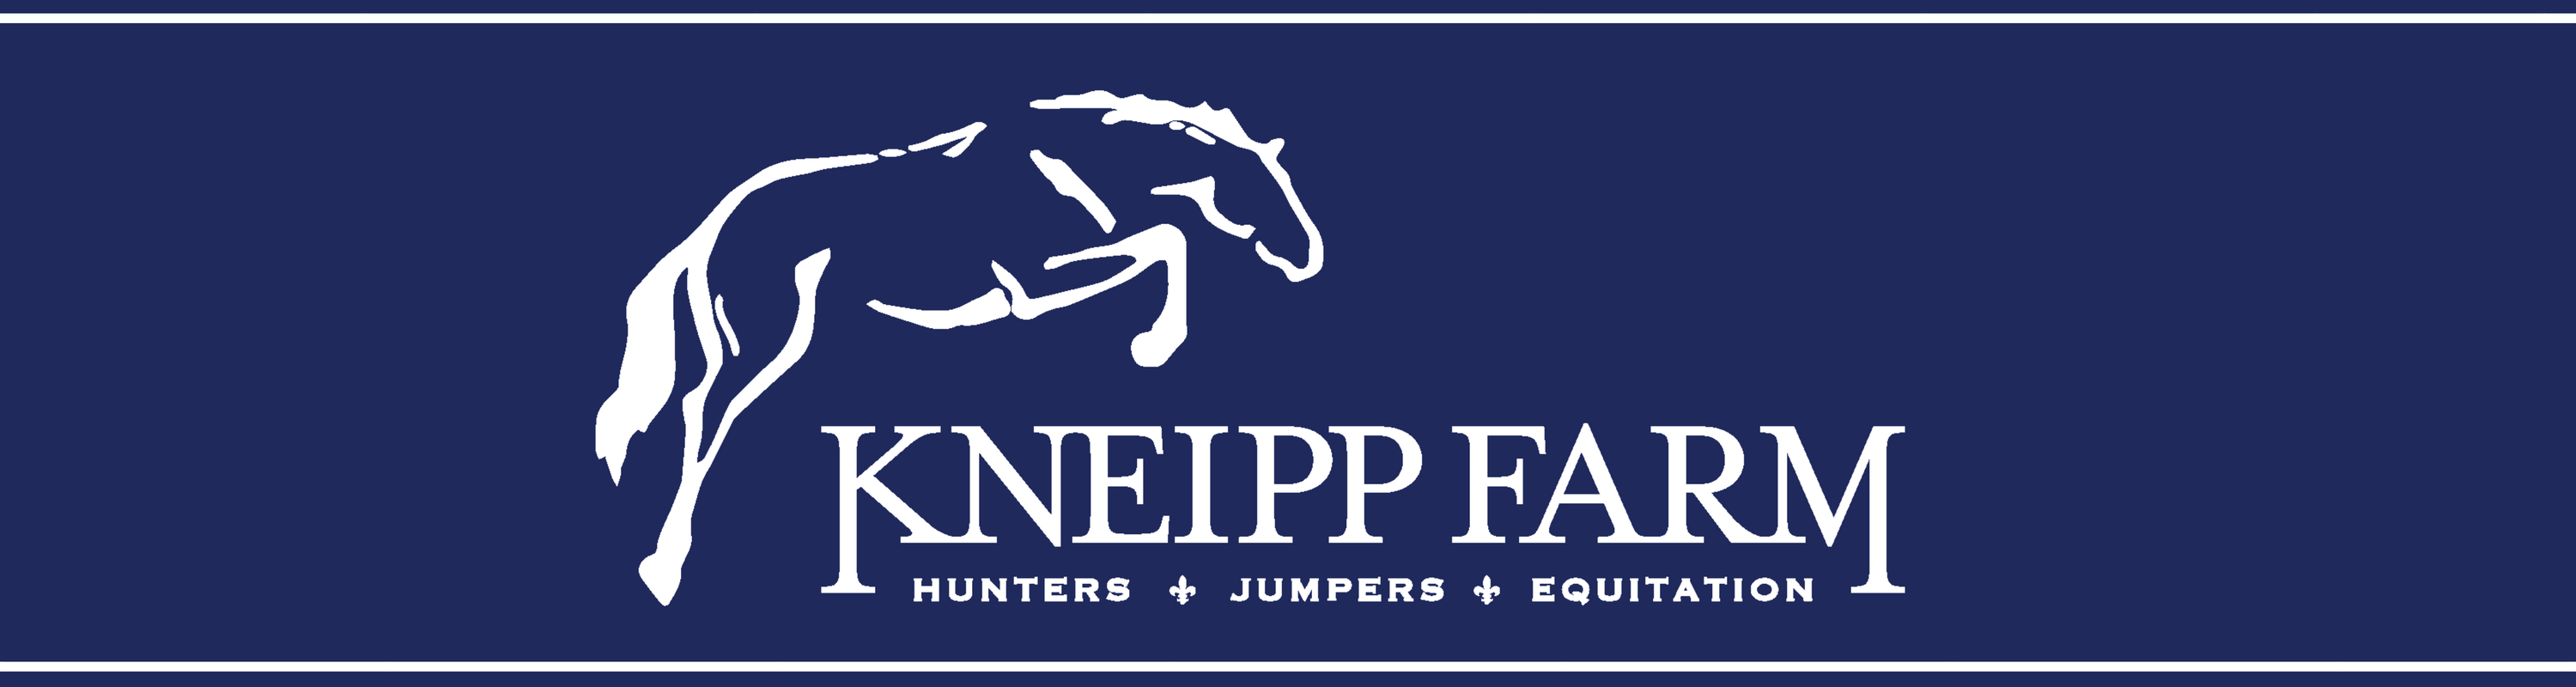 Kneipp Farm – Full service Hunter, Jumper, Equitation and horse boarding Barn